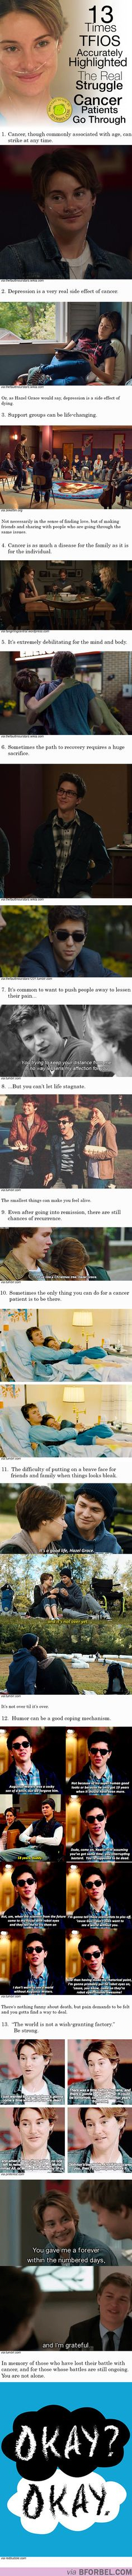 13 Times TFIOS Accurately Highlighted The Real Struggle Cancer Patients Go Through… Stand Up To Cancer!